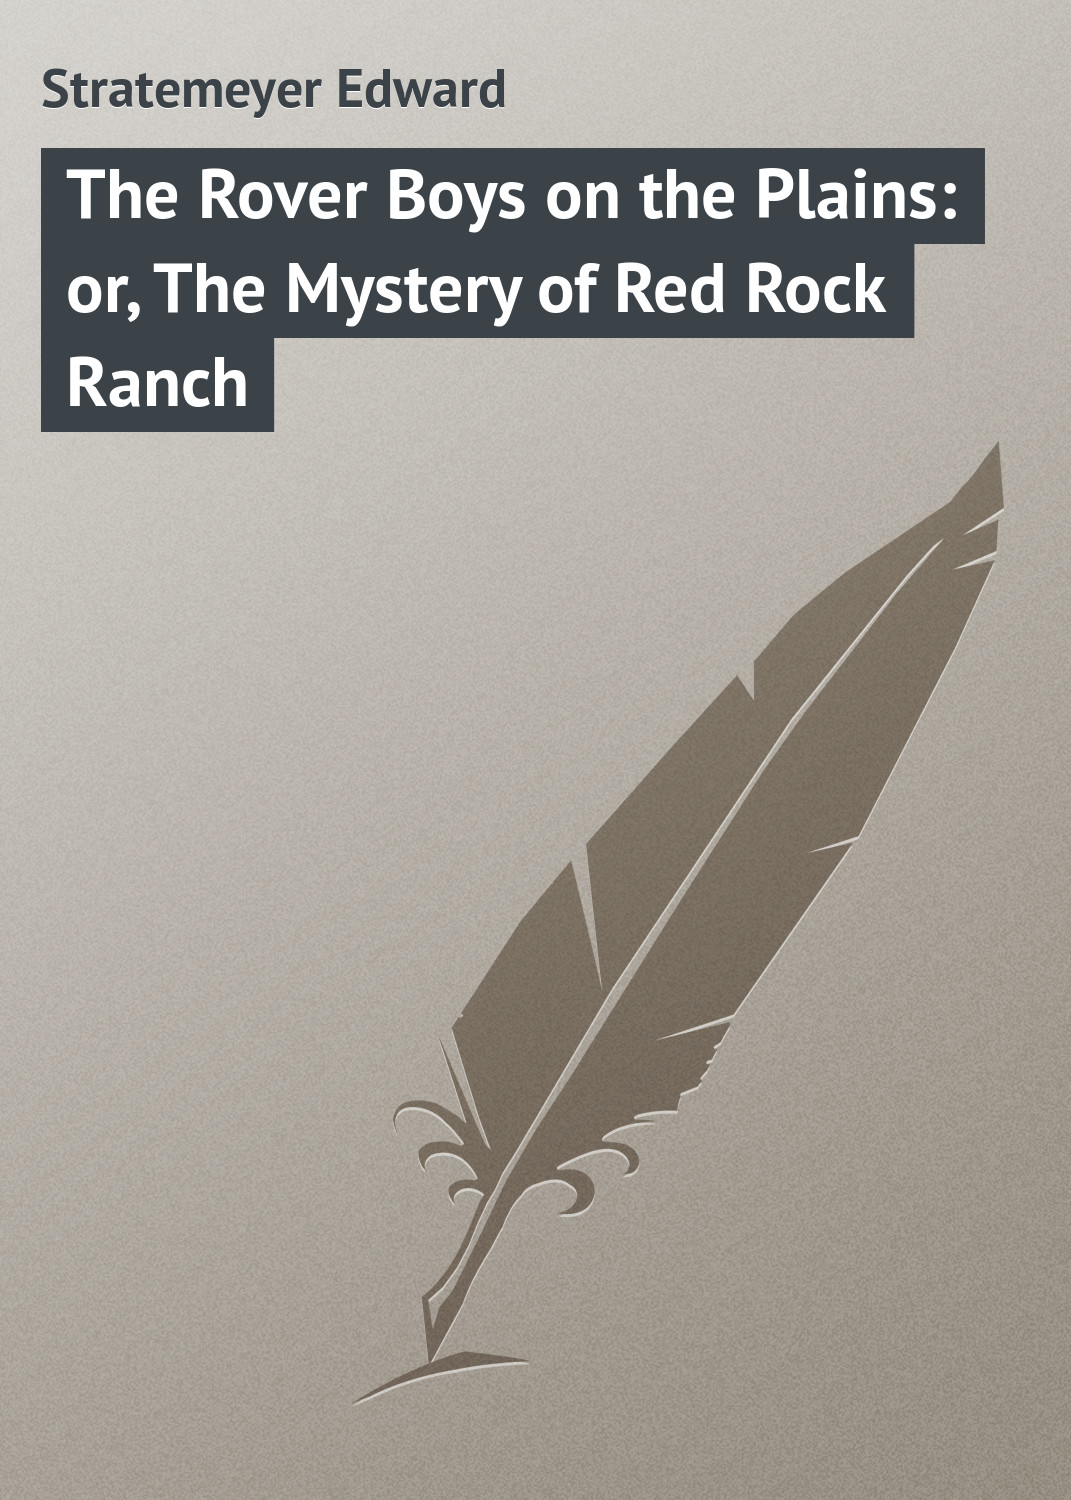 Stratemeyer Edward The Rover Boys on the Plains: or, The Mystery of Red Rock Ranch hardy boys 47 mystery of the whale tattoo